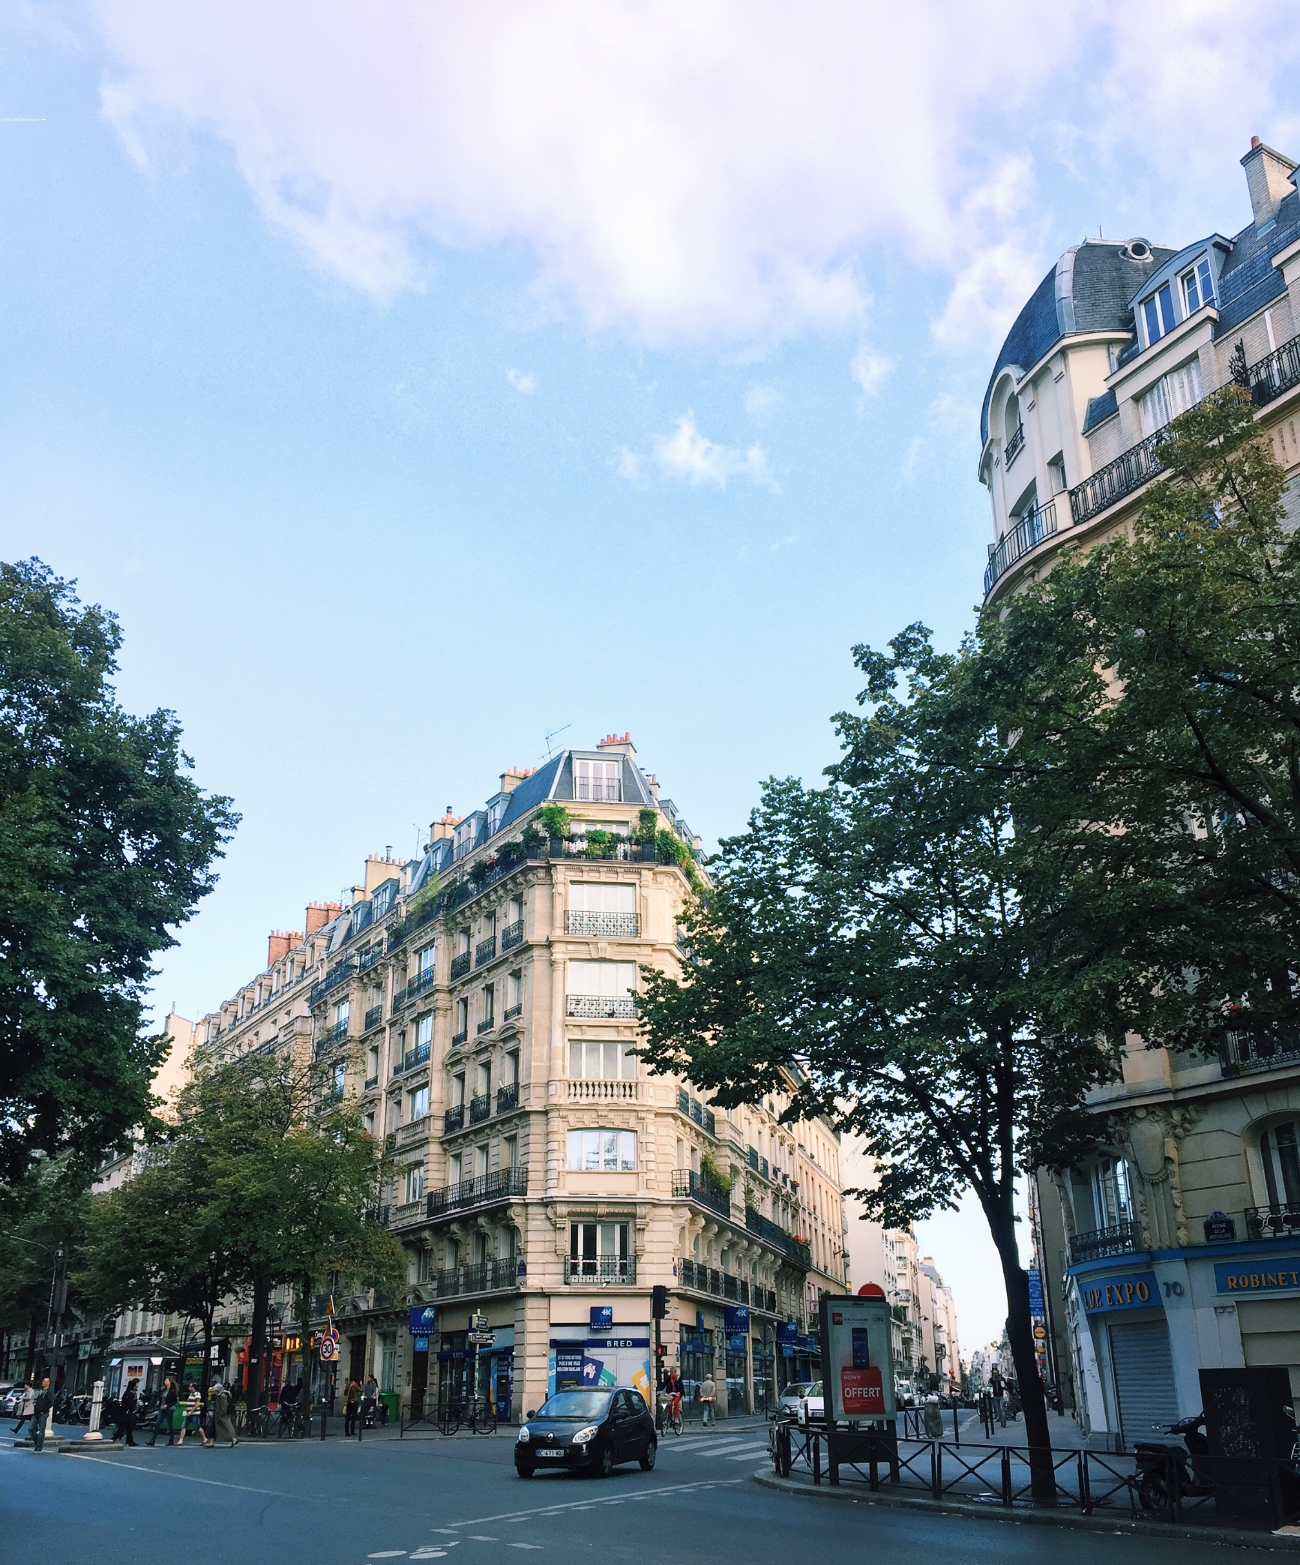 11th Arrondissement, Paris, France